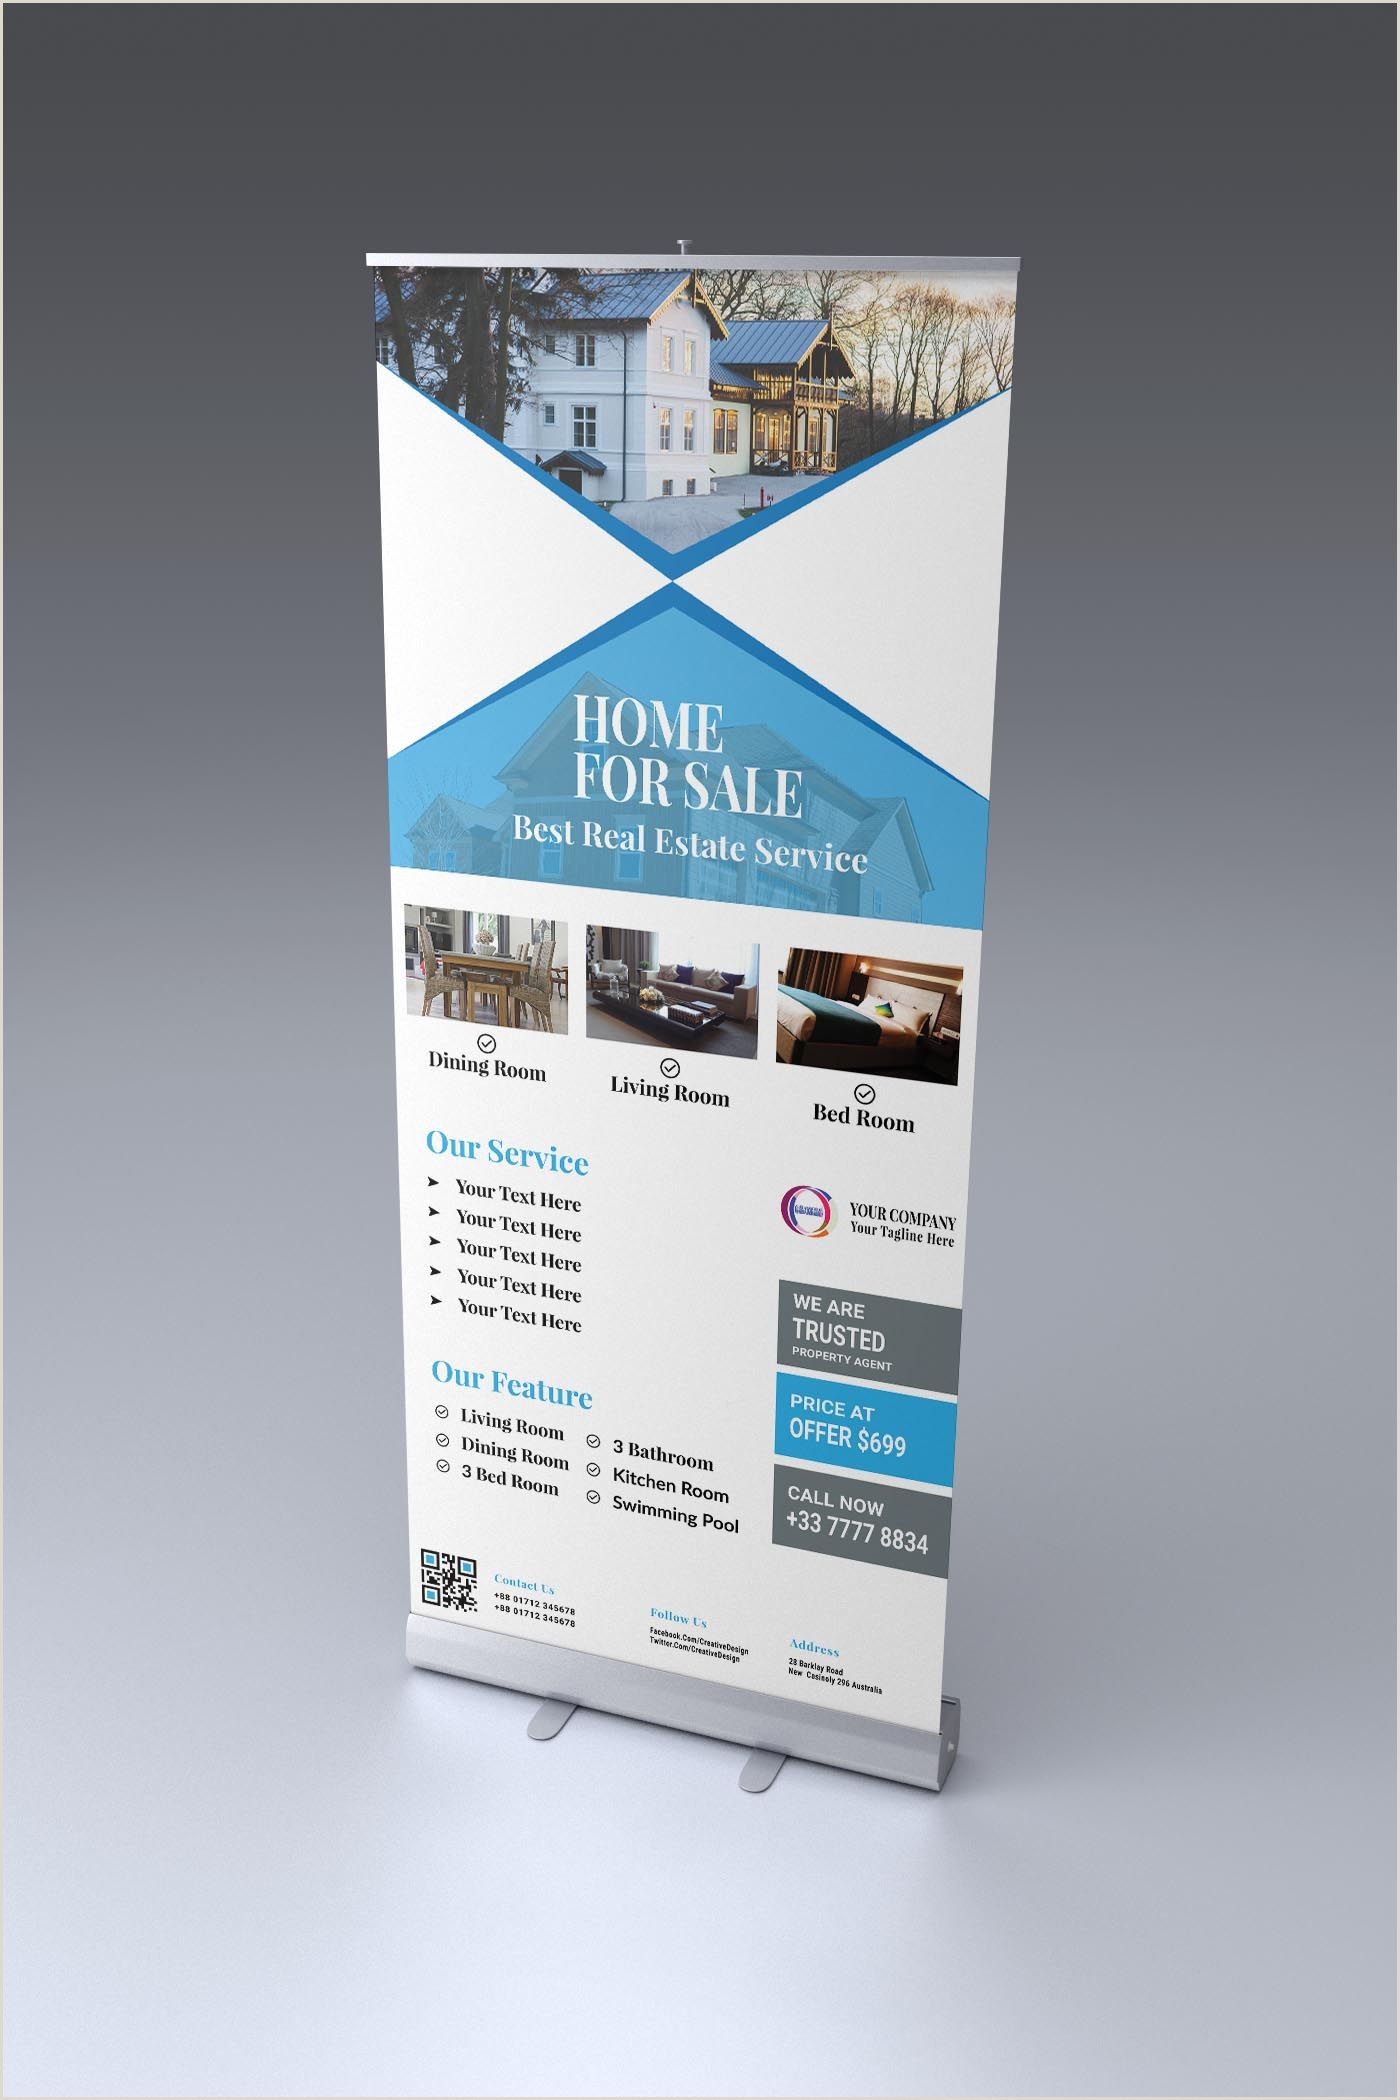 Roll Out Banner Looking For A Roll Up Banner Design The Image